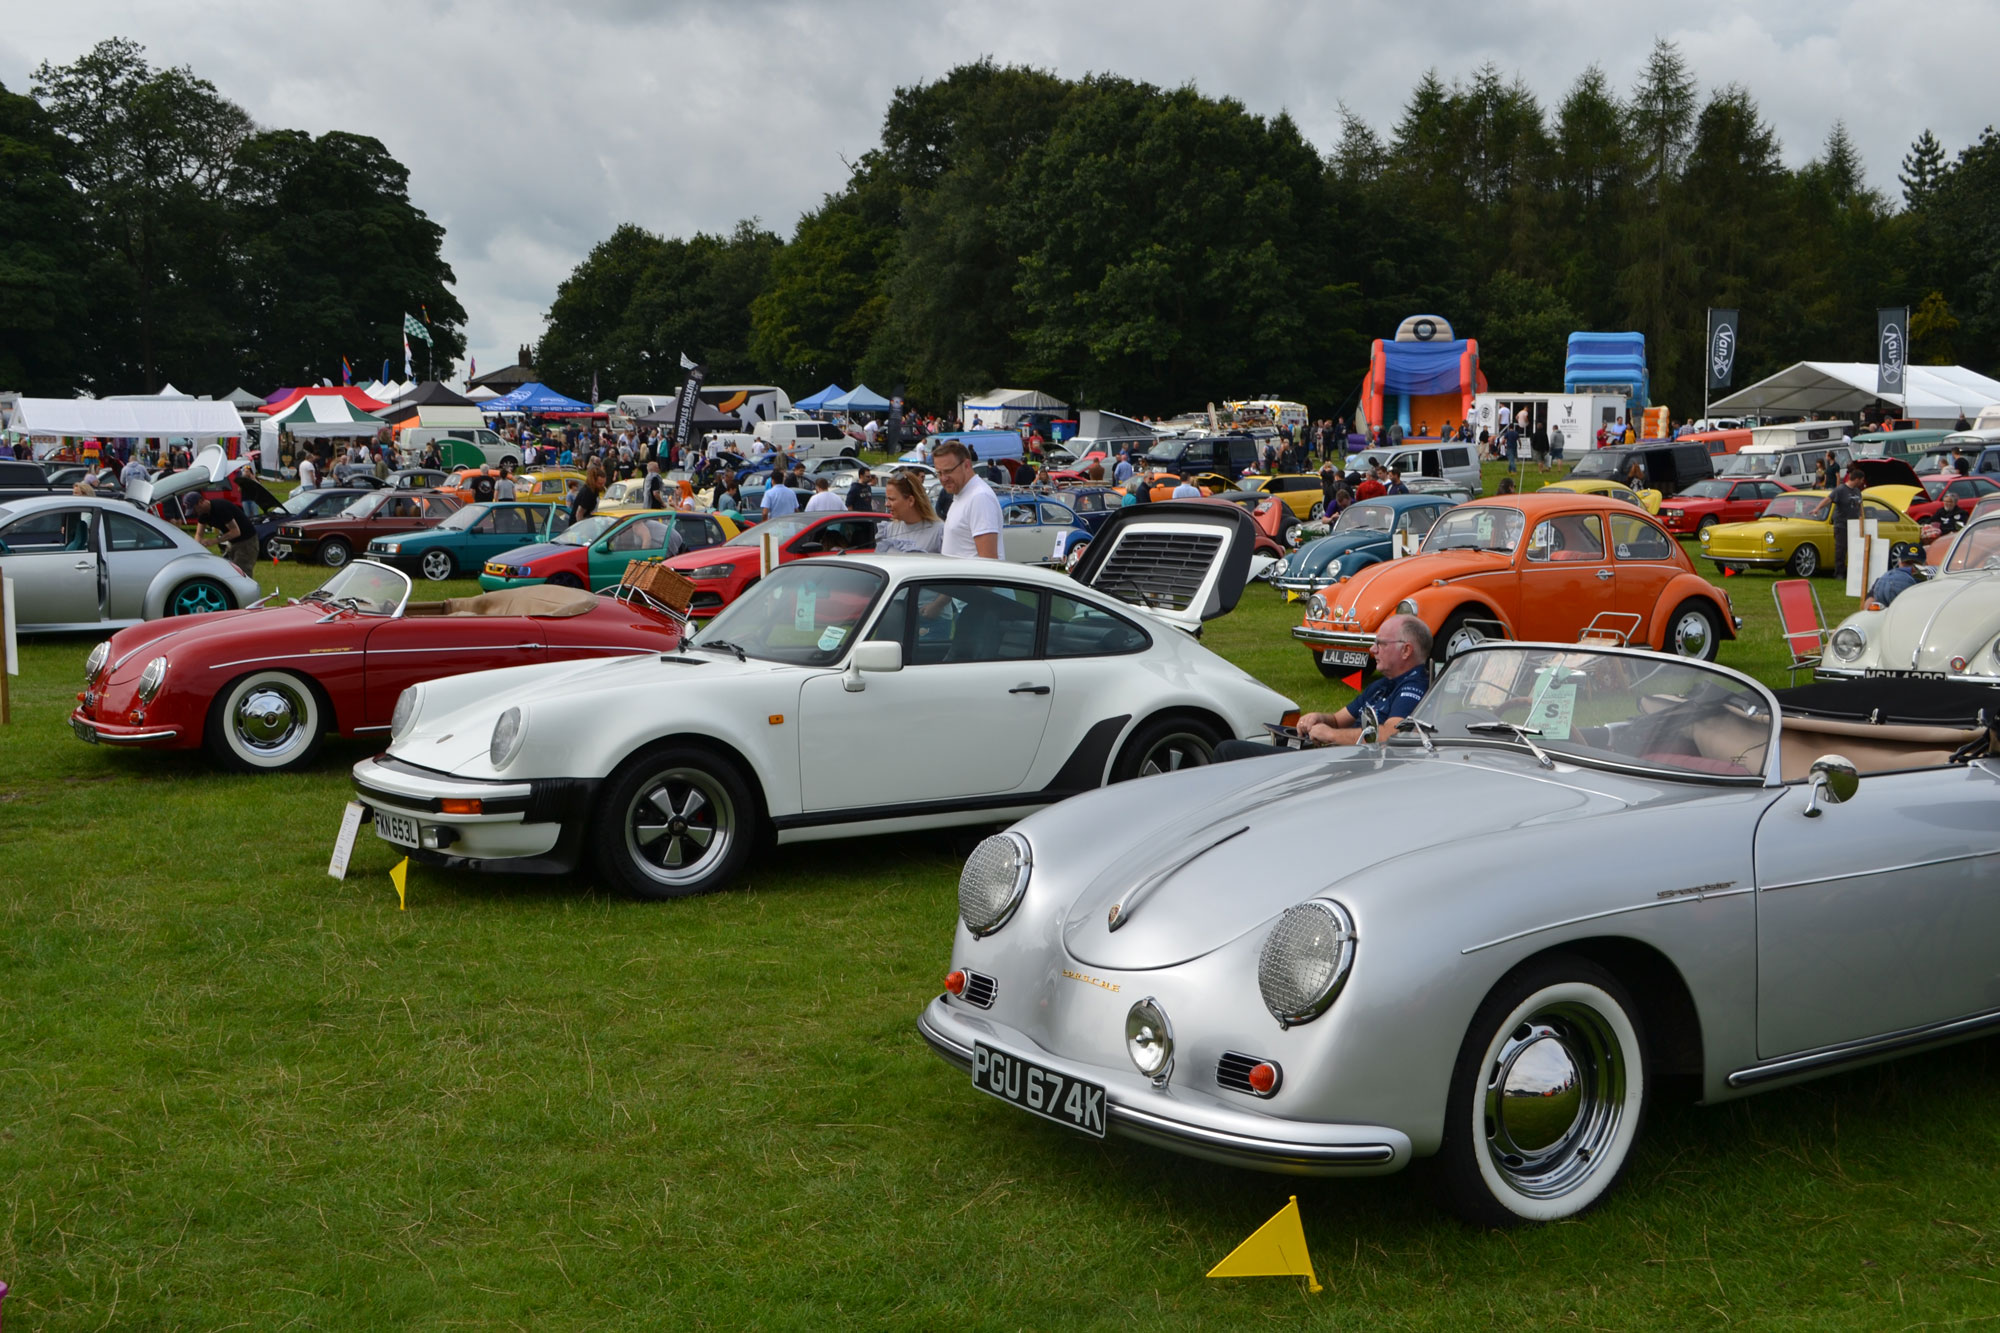 VW NW Car Show Tatton Park Th August Speedsters And - Vw car show this weekend